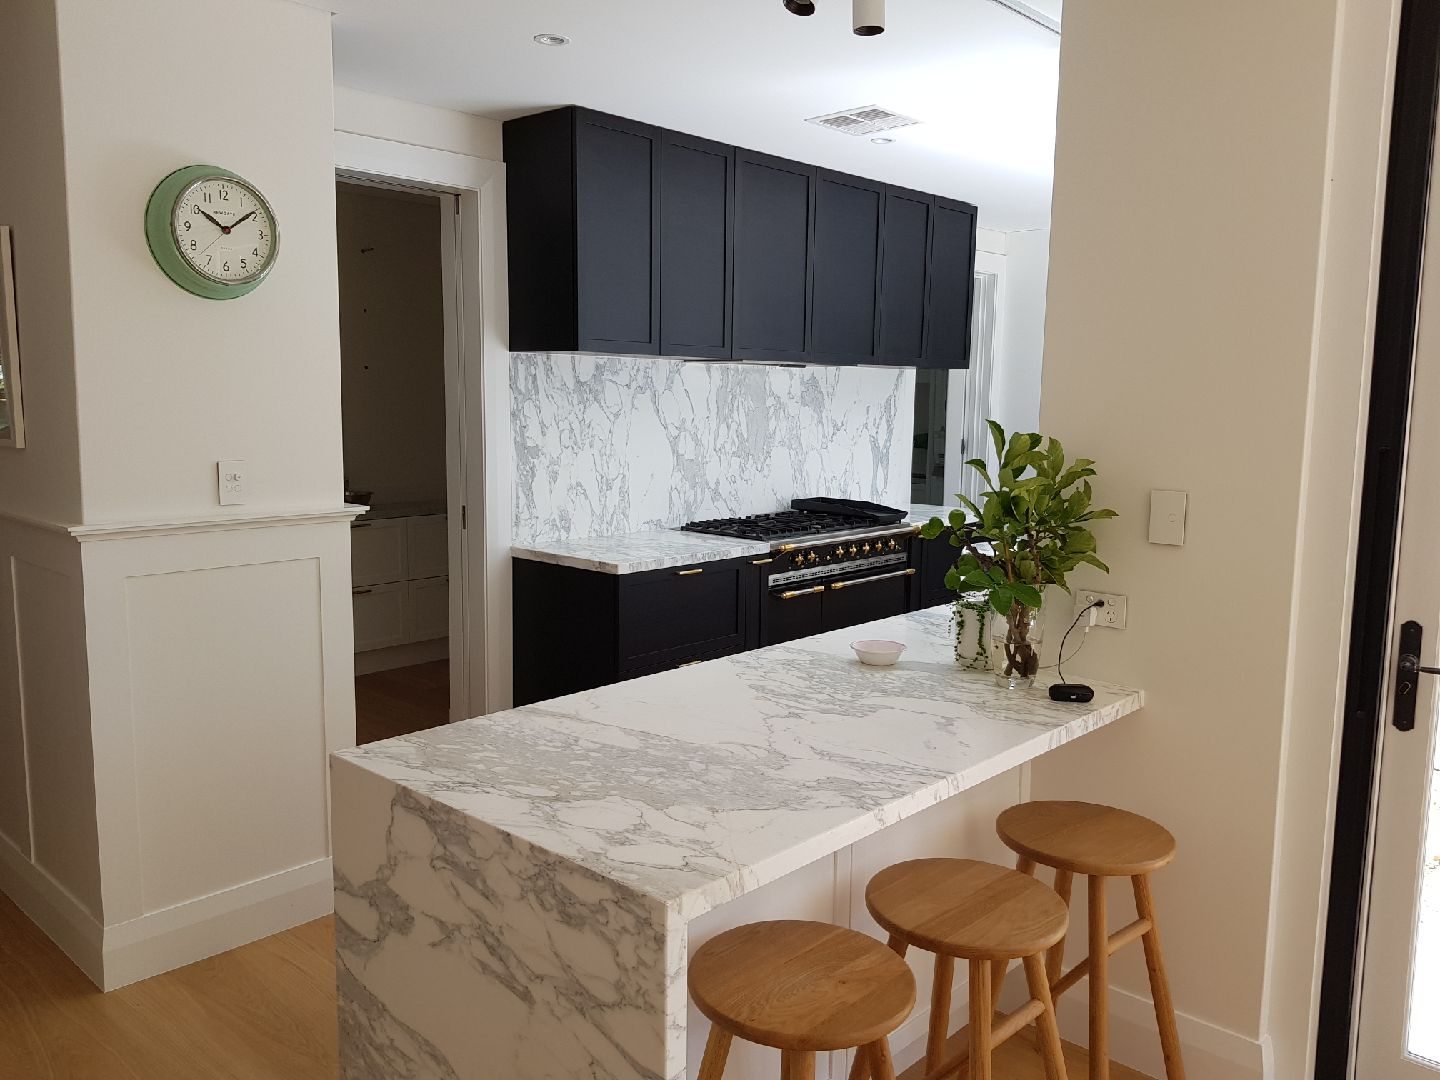 Choosing the Right Benchtop Stone: Porcelain, Natural or Engineered